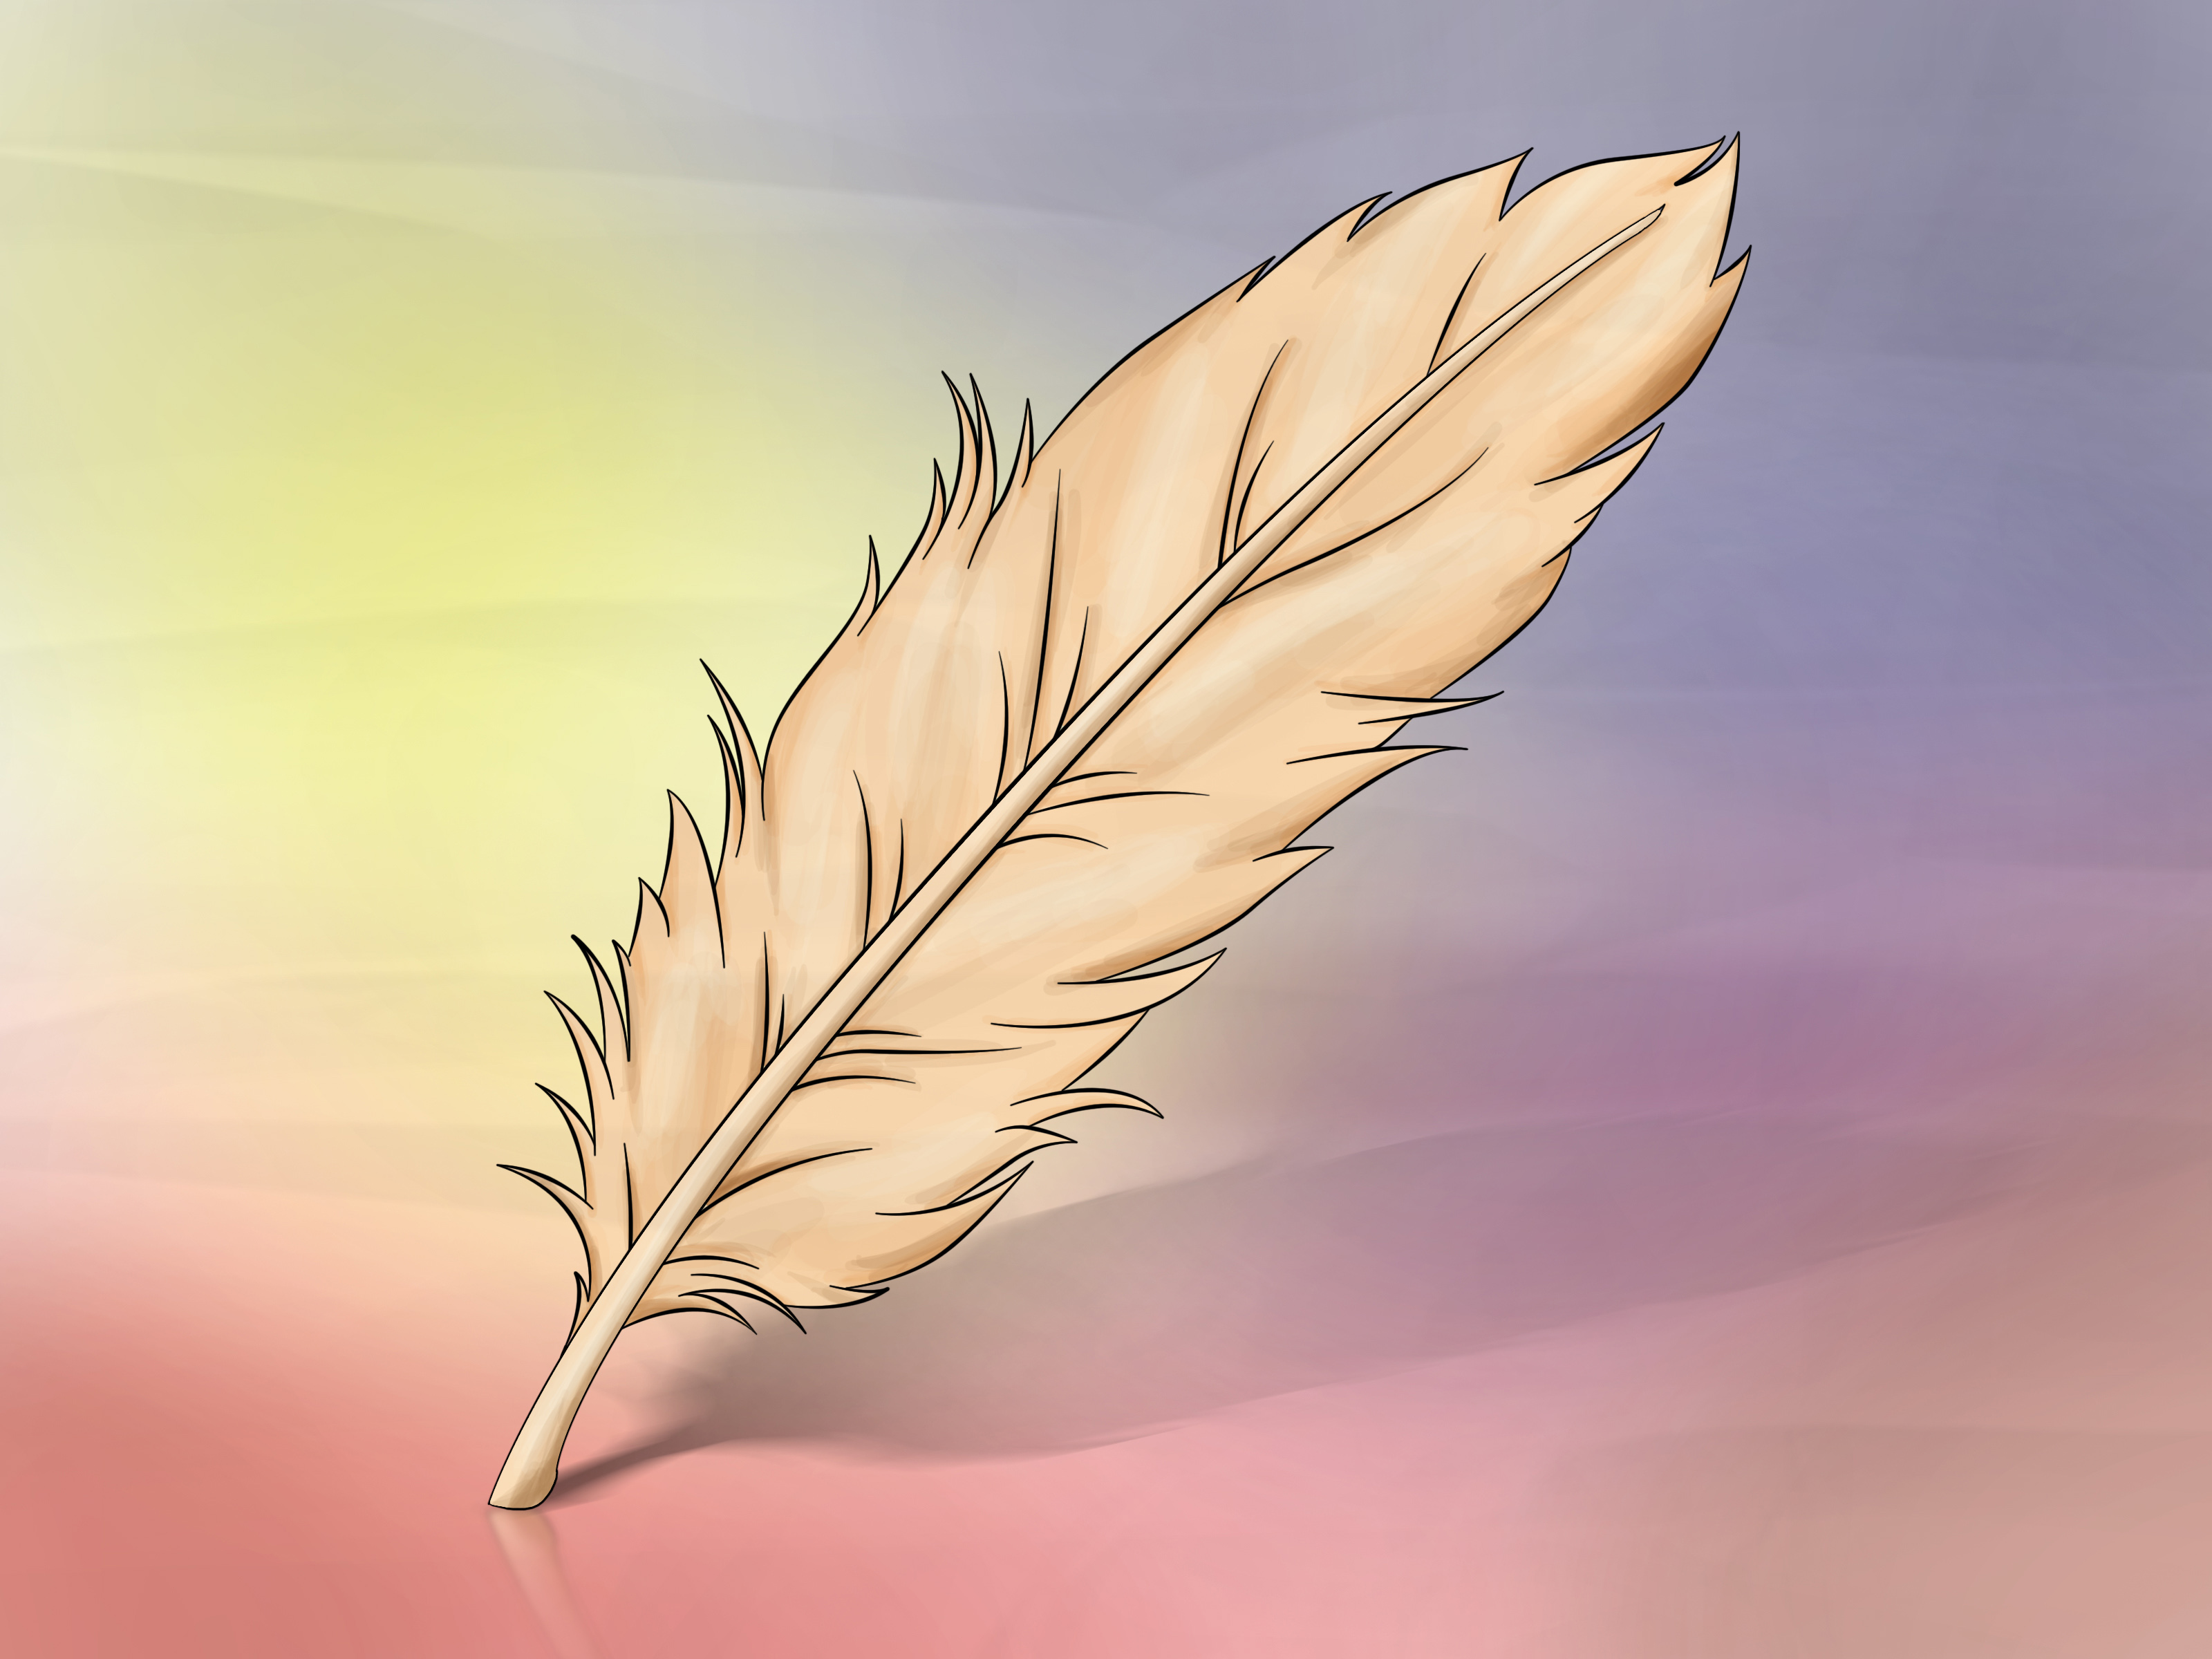 3200x2400 How To Draw A Feather 8 Steps (With Pictures)